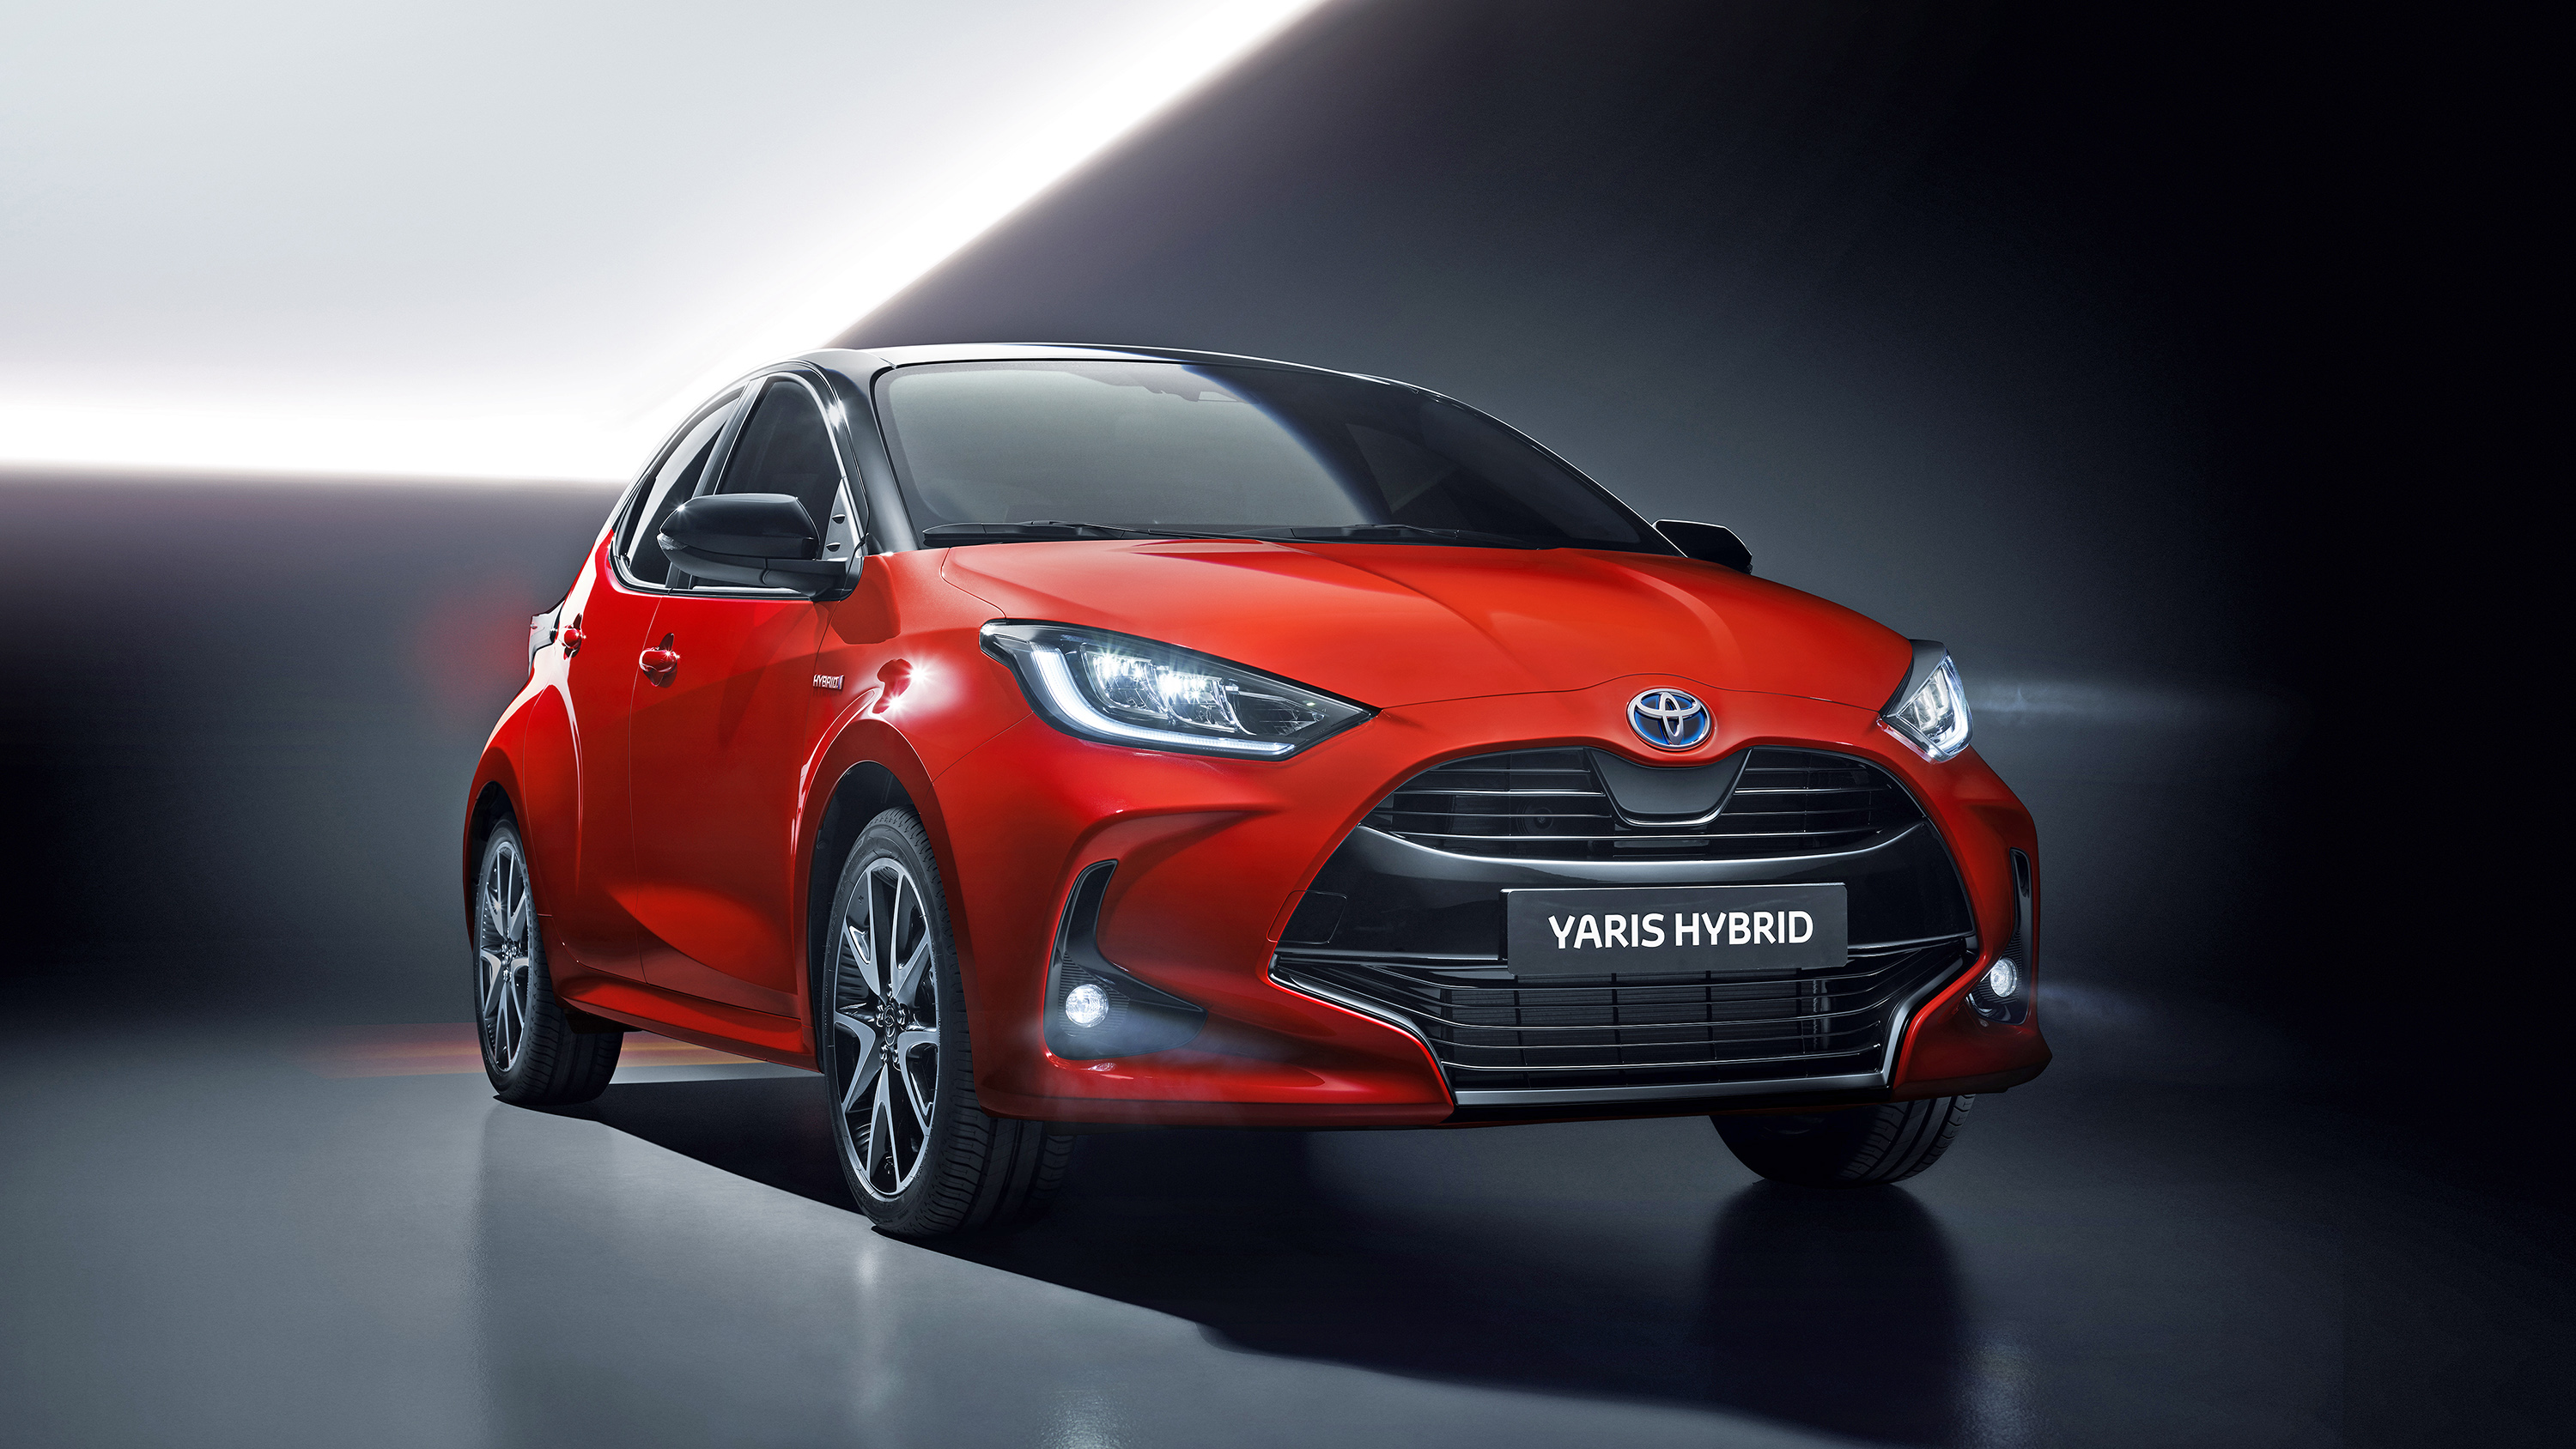 New 2020 Toyota Yaris Hybrid Specifications Prices And Economy Buyacar